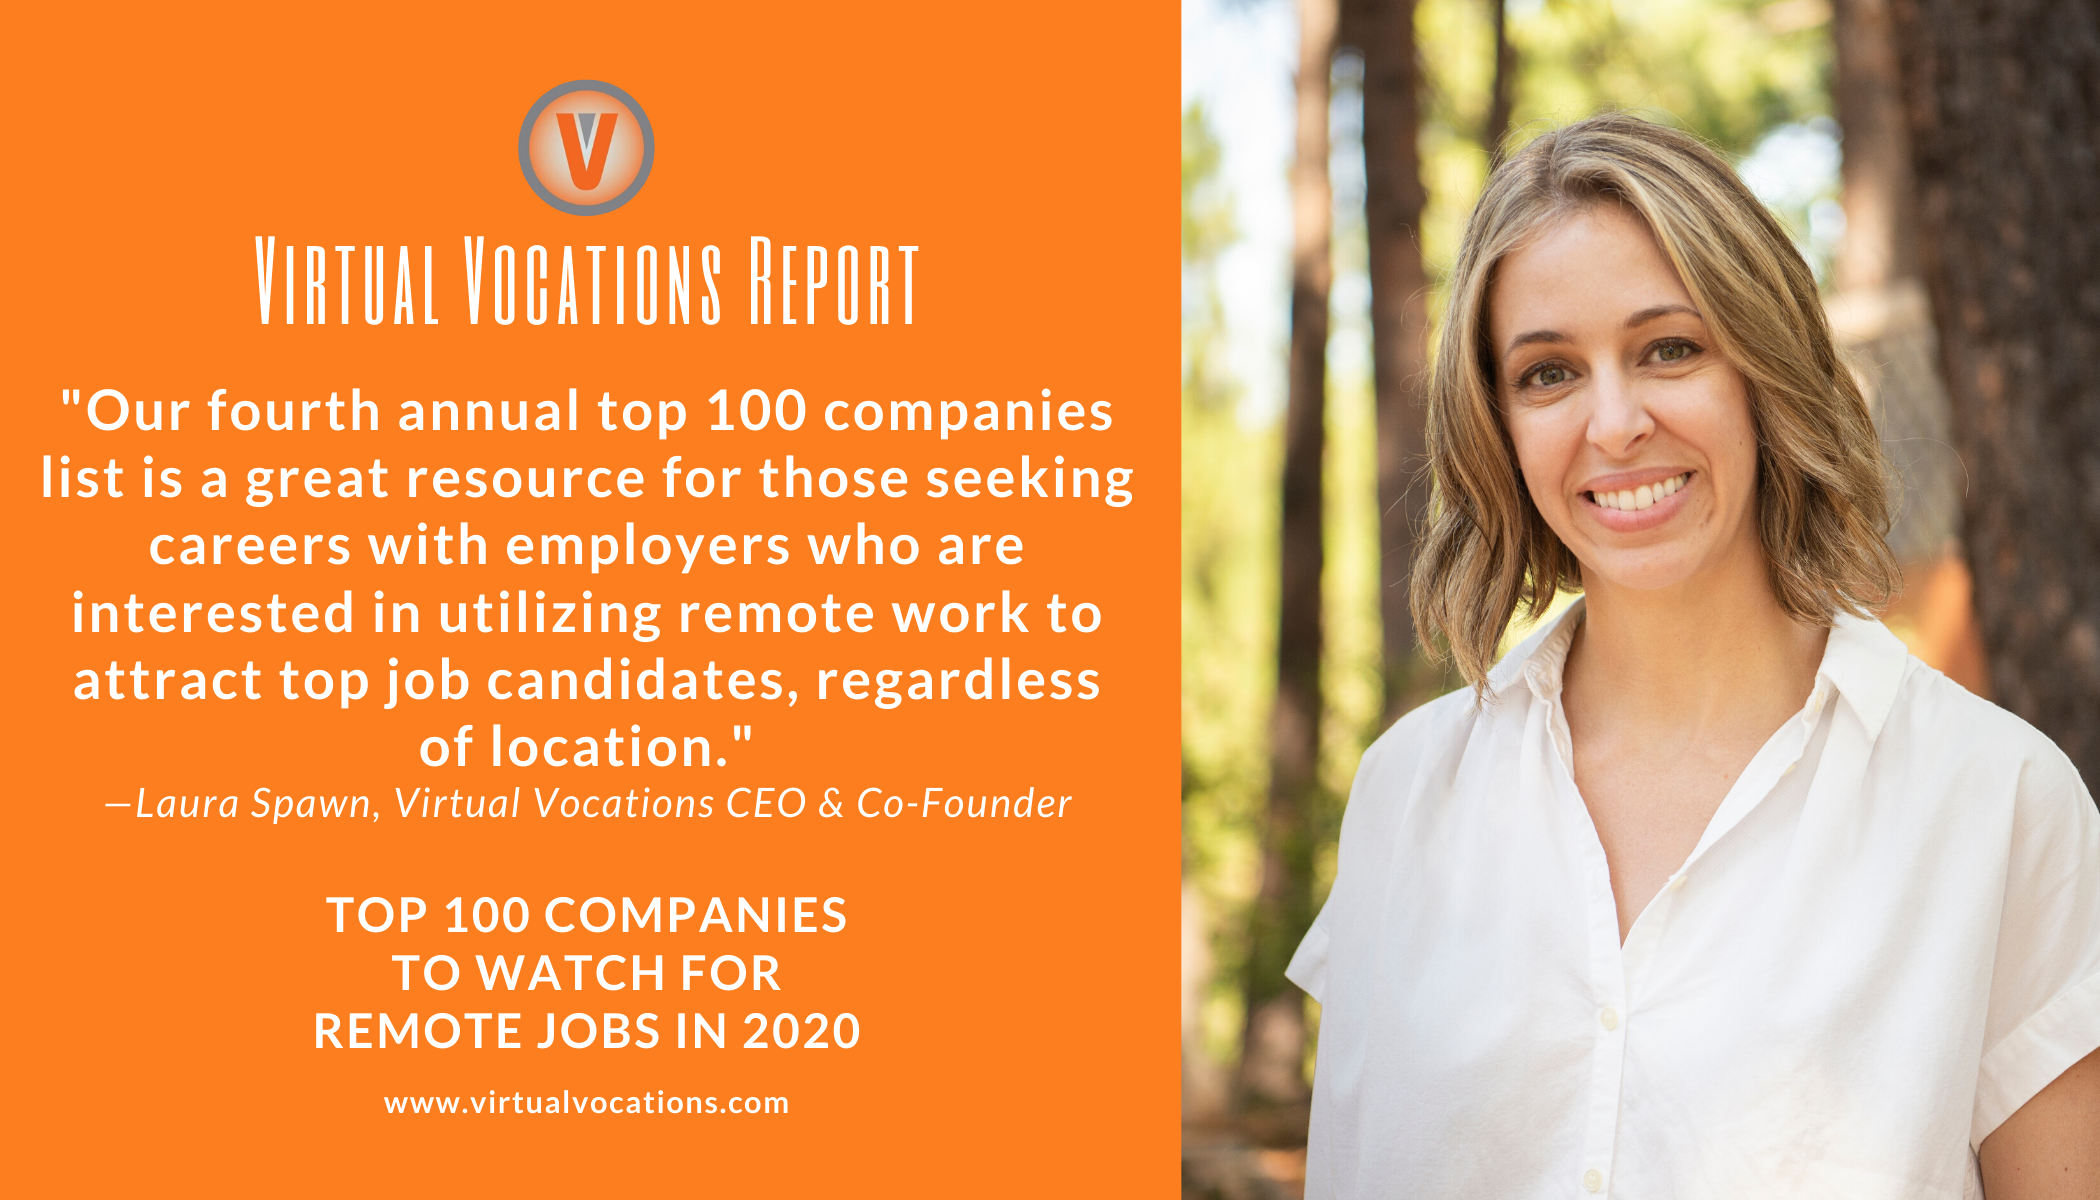 Virtual Vocations CEO Laura Spawn Quote - Top 100 Companies to Watch for Remote Jobs in 2020